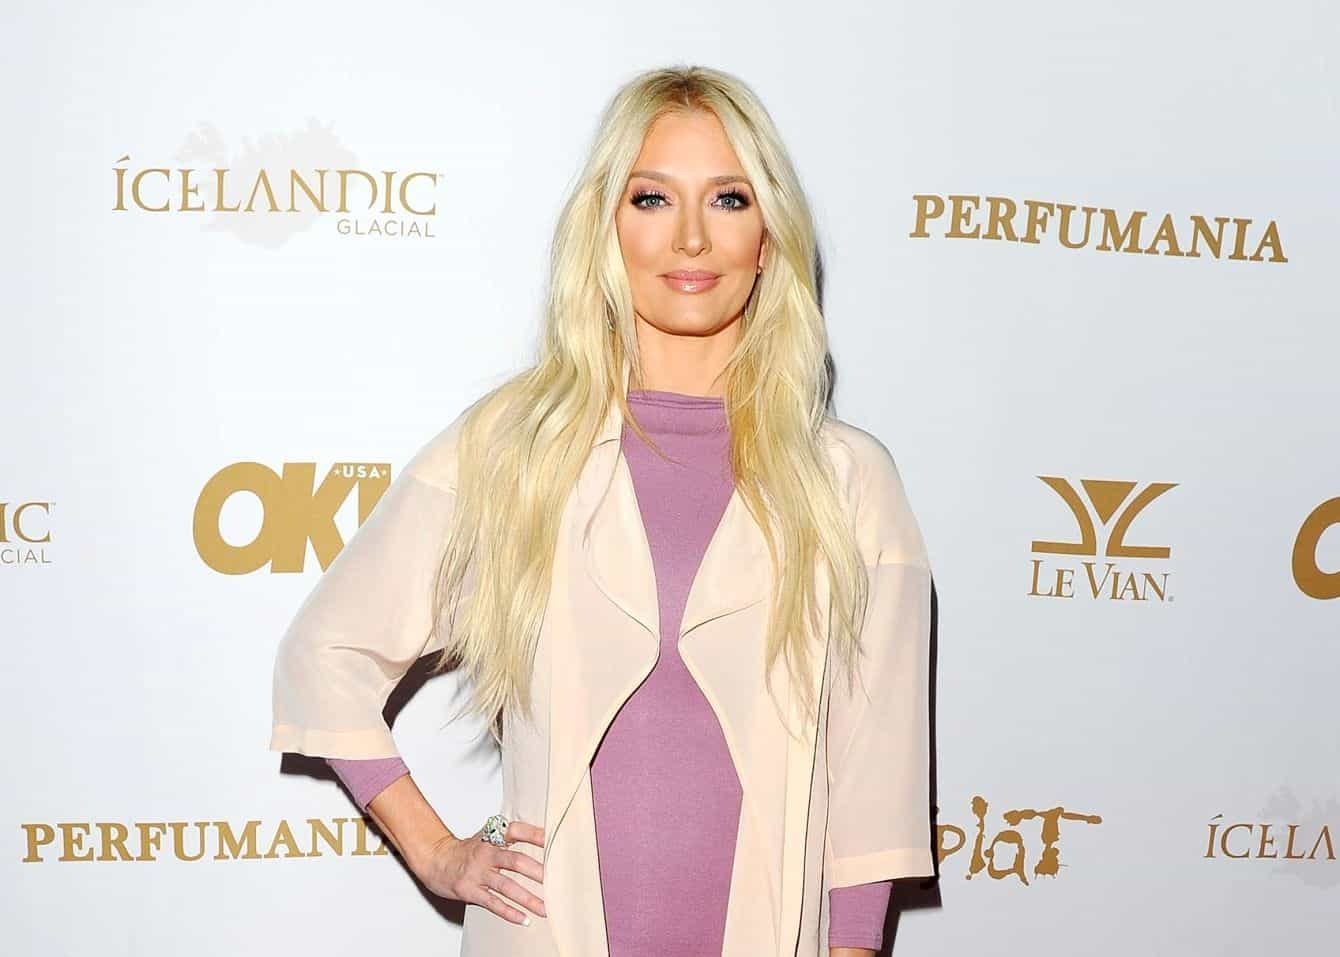 REPORT: Erika Jayne is Unhappy With Edit on RHOBH and Worried About Career Amid Embezzlement Claims